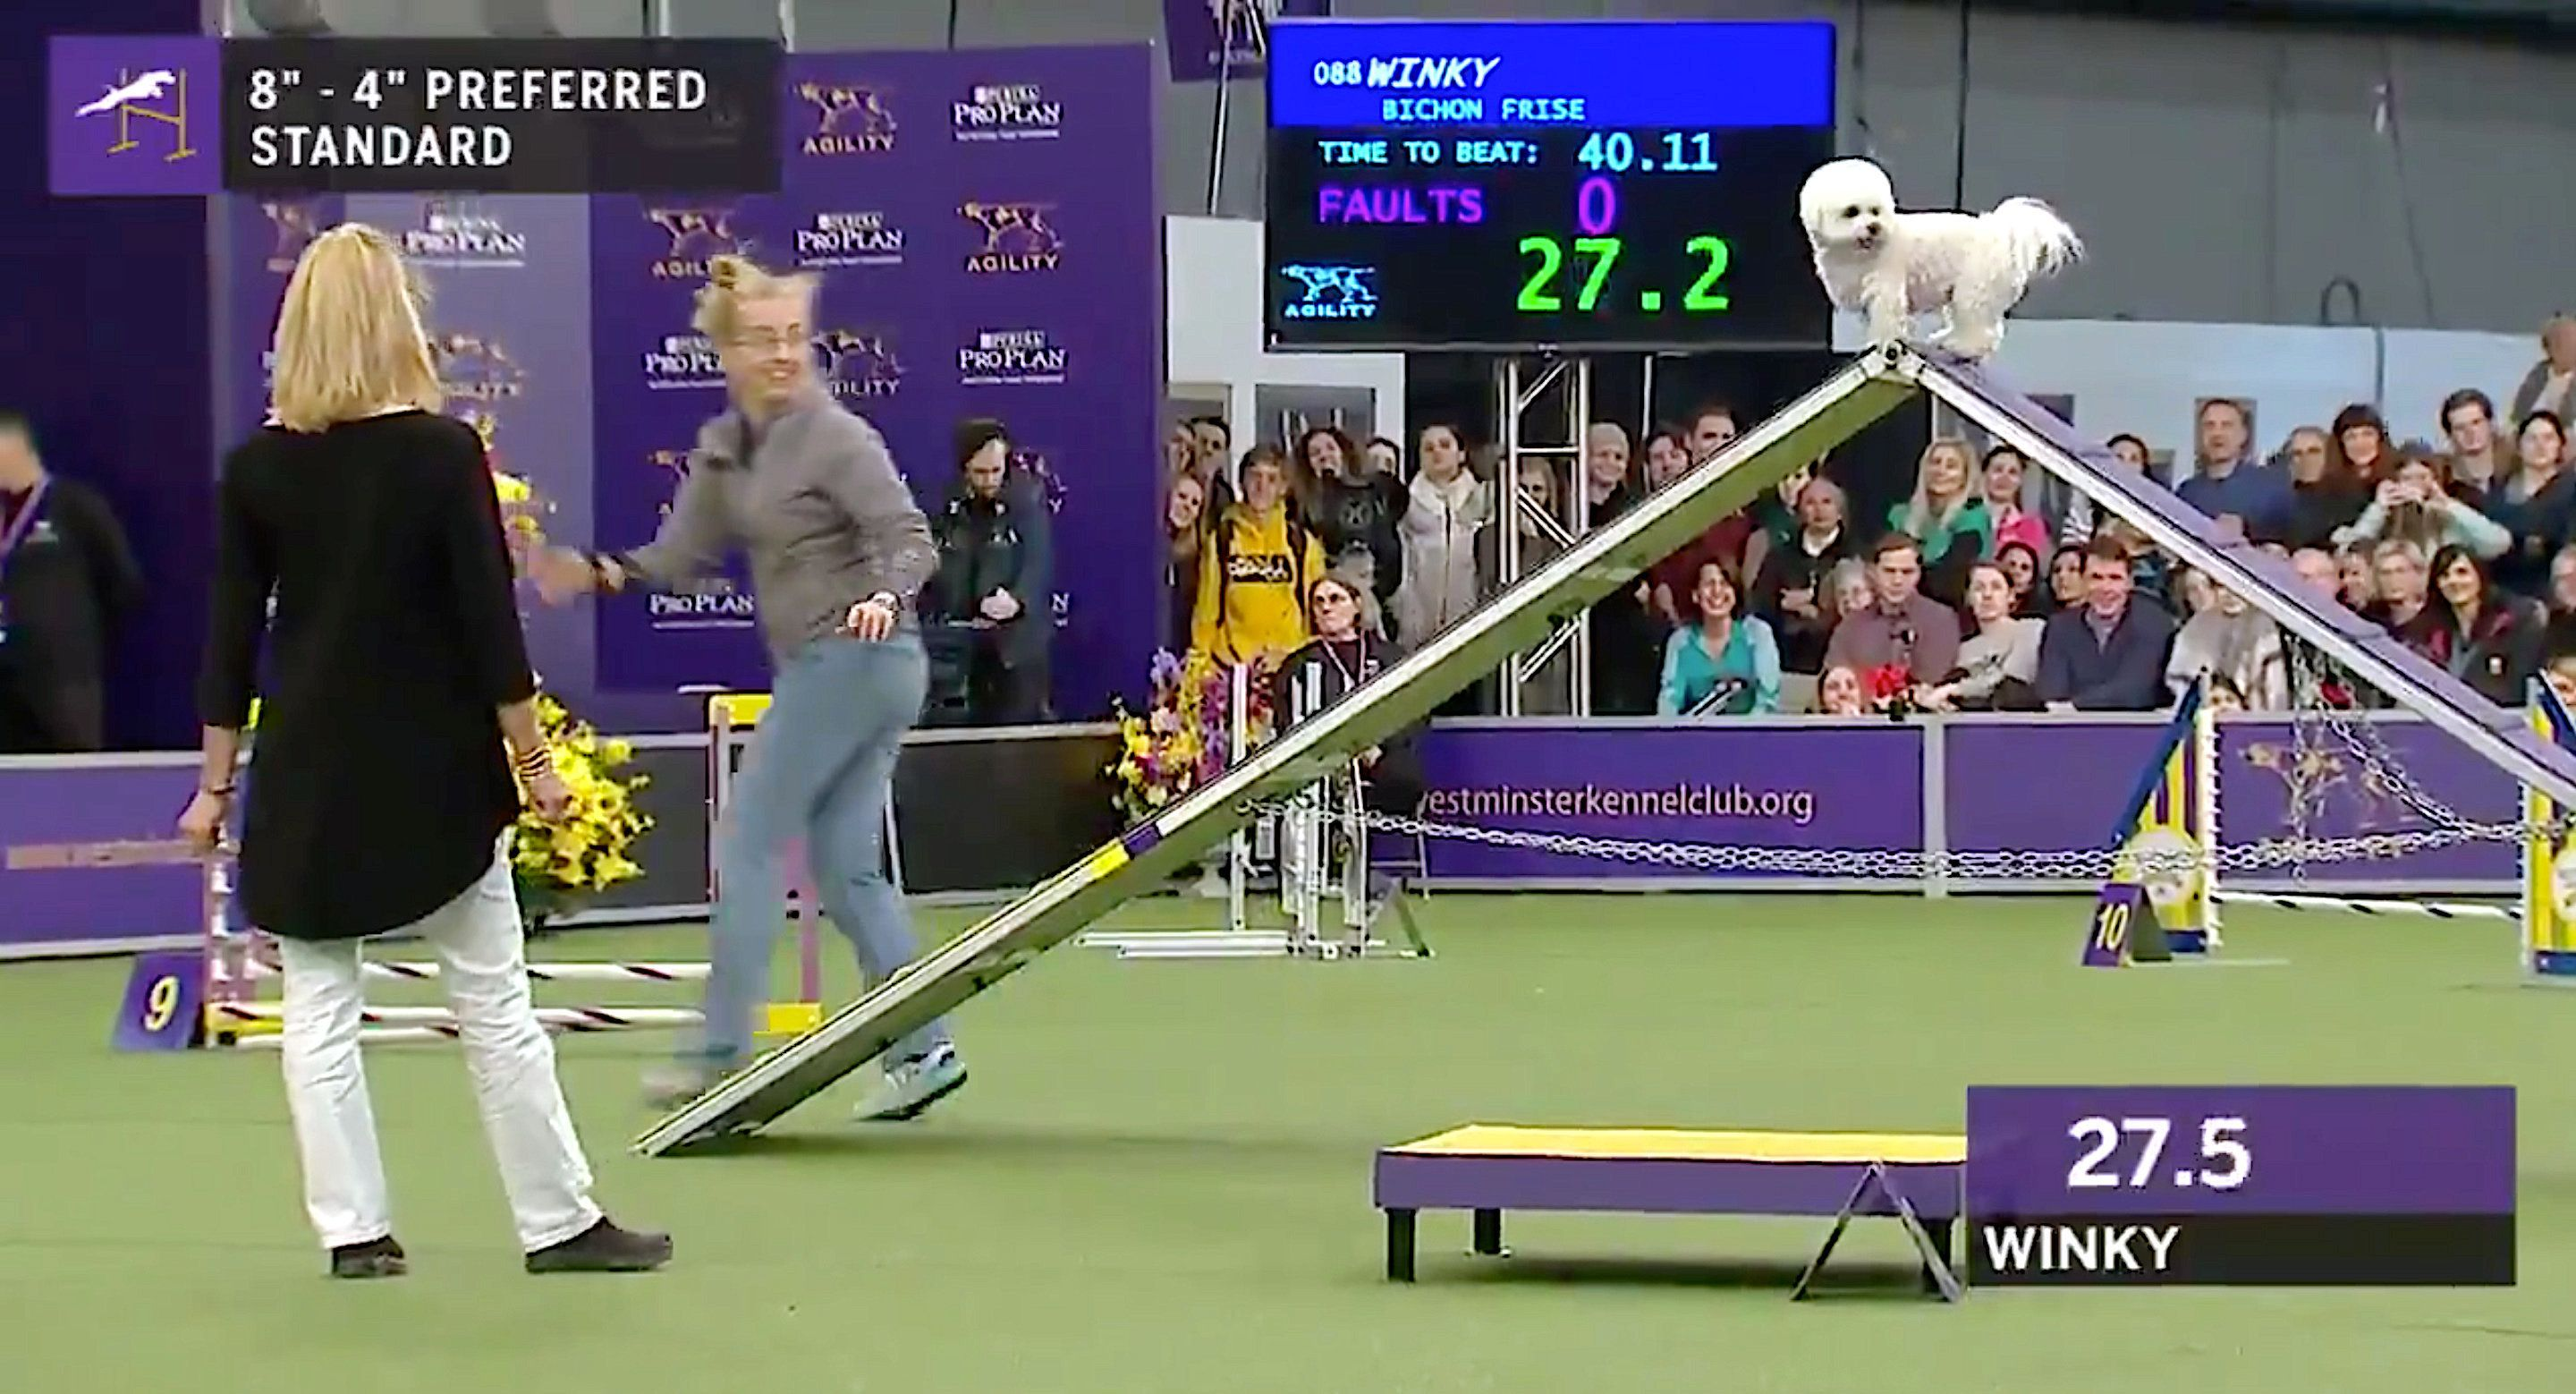 Read: Winky The Bichon Frise Loses At Westminster Agility But Wins The Internet